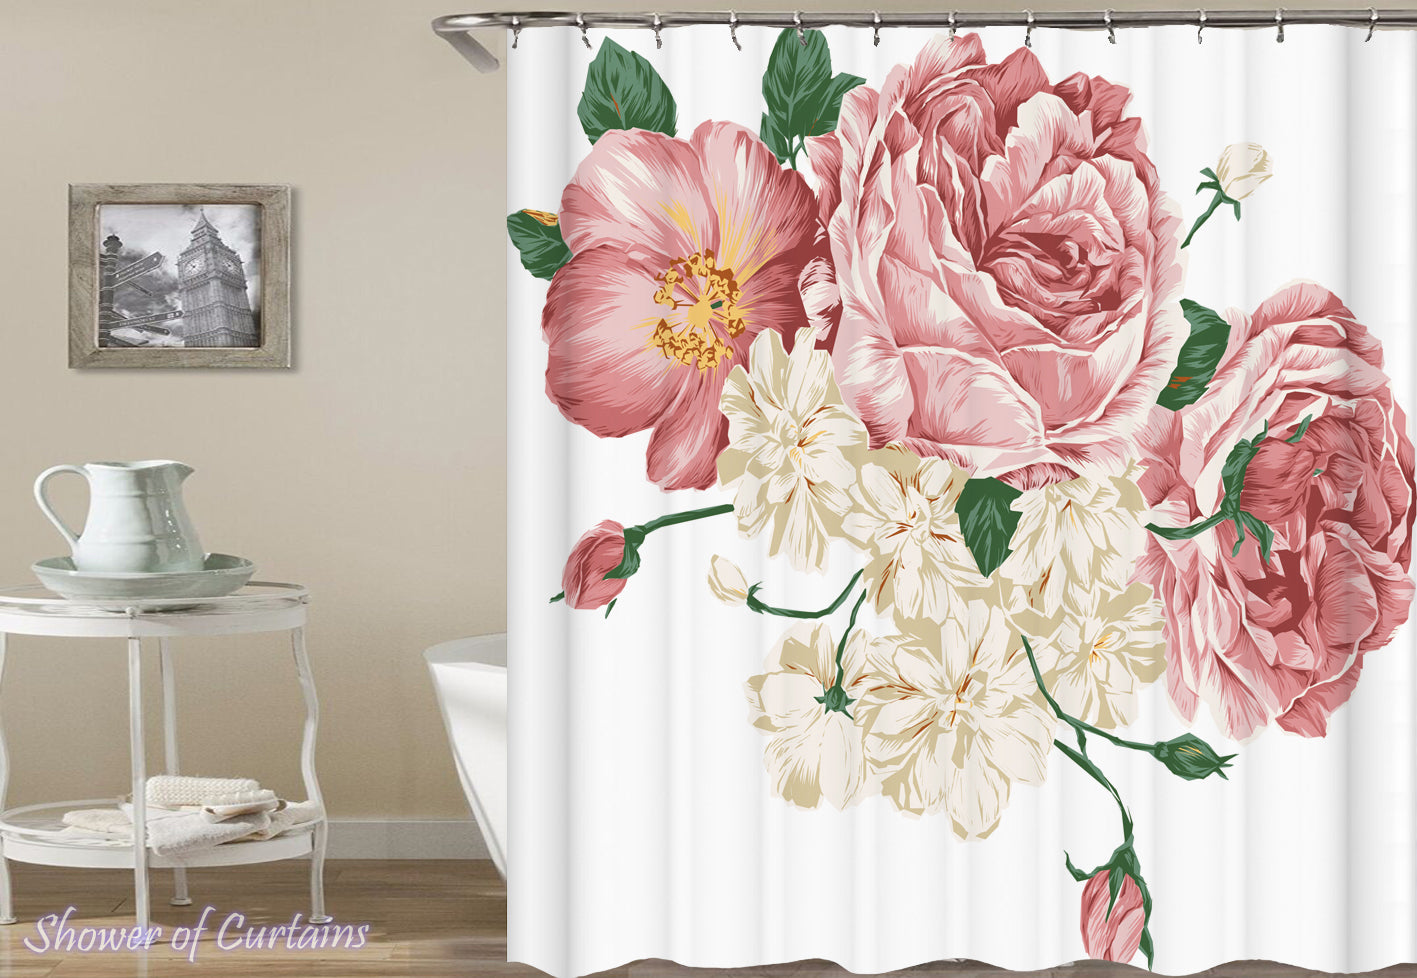 Shower curtains pink and white fresh flowers shower of curtains pink and white fresh flowers print shower curtains mightylinksfo